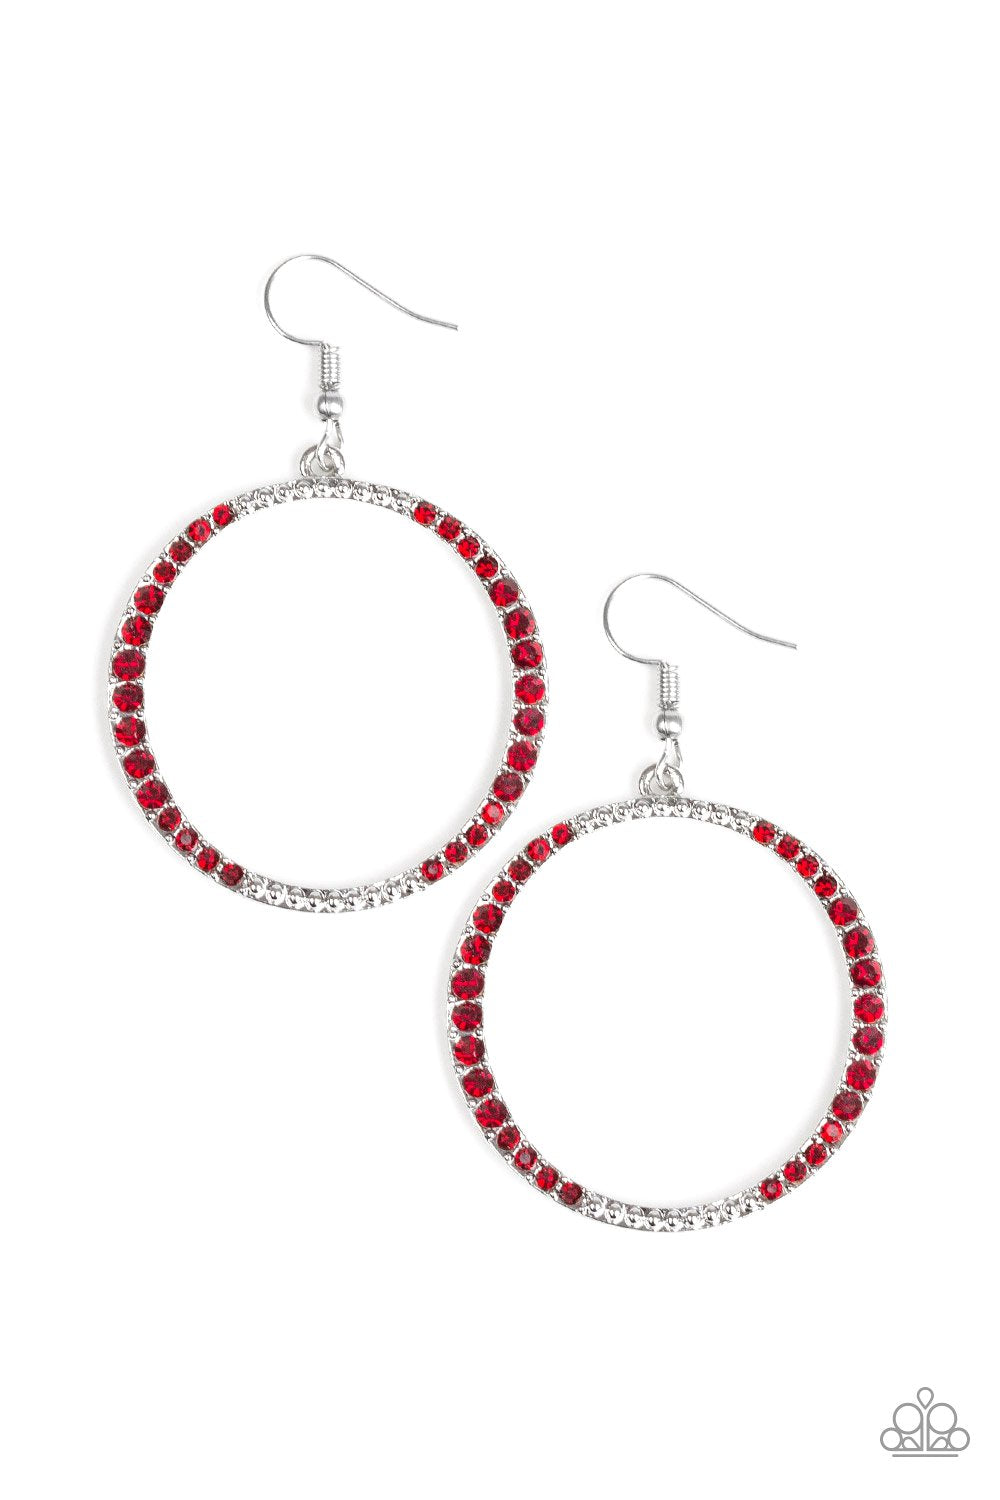 Risky Ritz - Red - Paparazzi Accessories - Pretty Girl Jewels